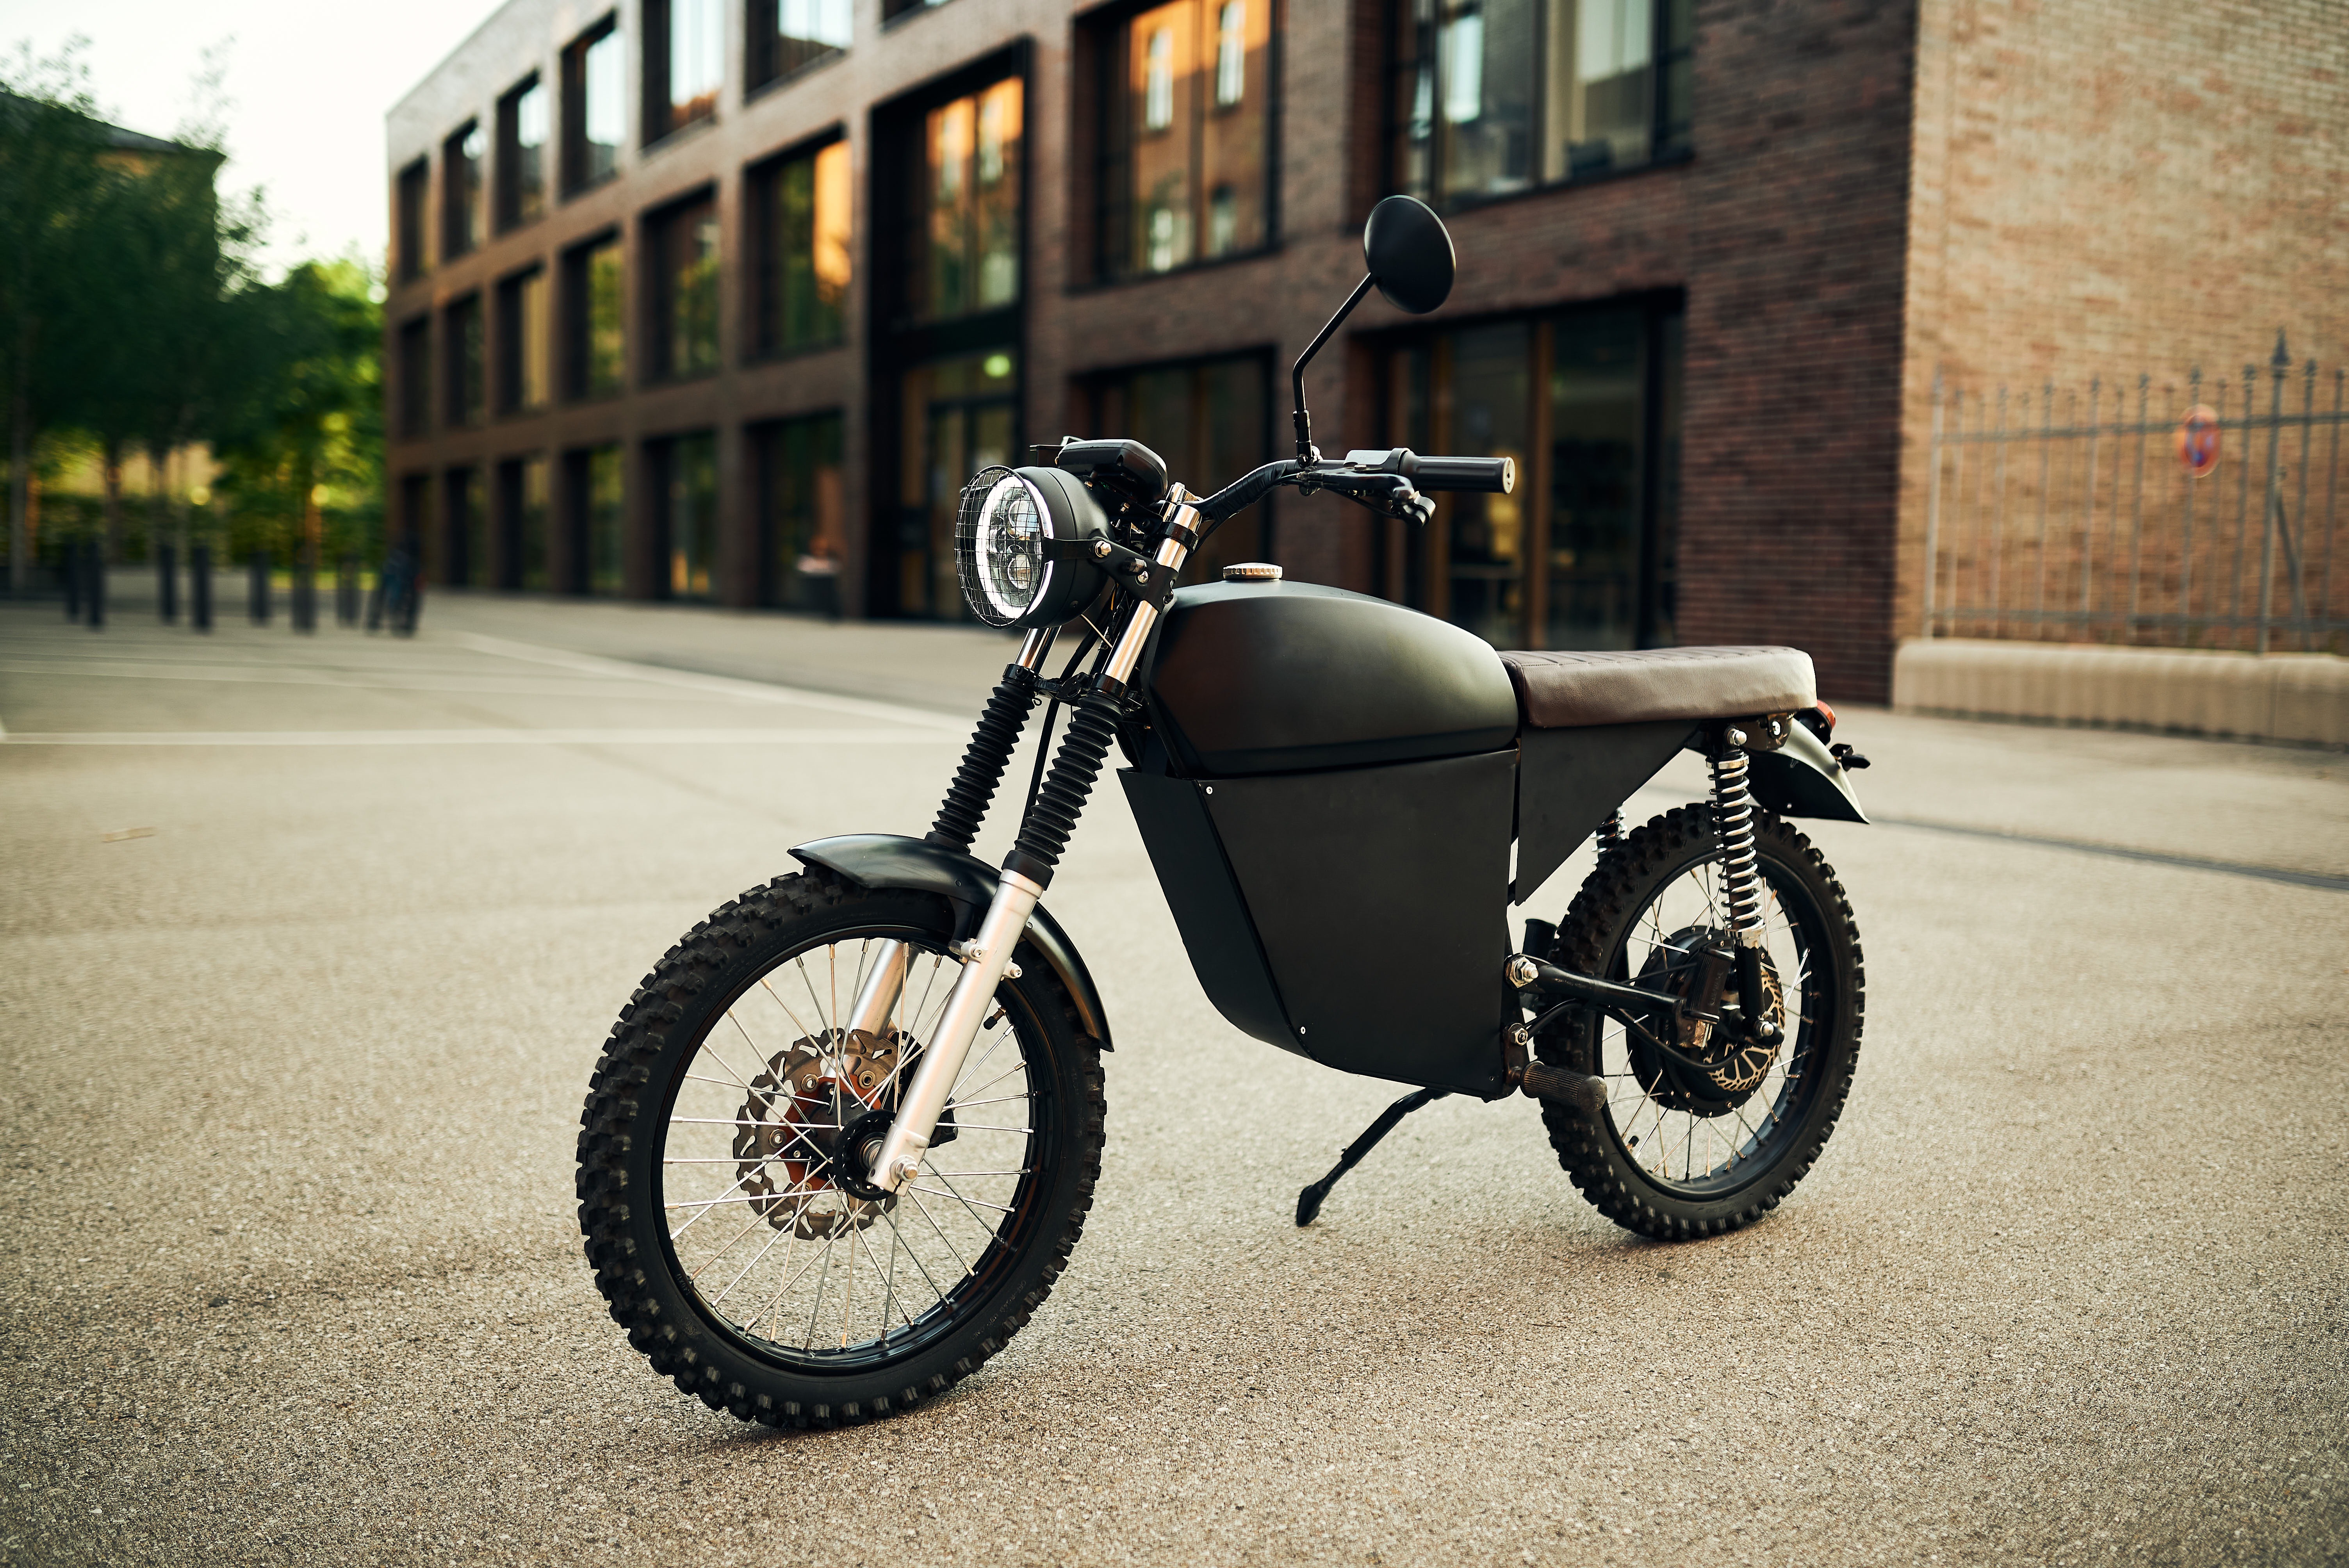 The BlackTea Moped's battery should take around five hours to charge via a standard 220-V wall outlet